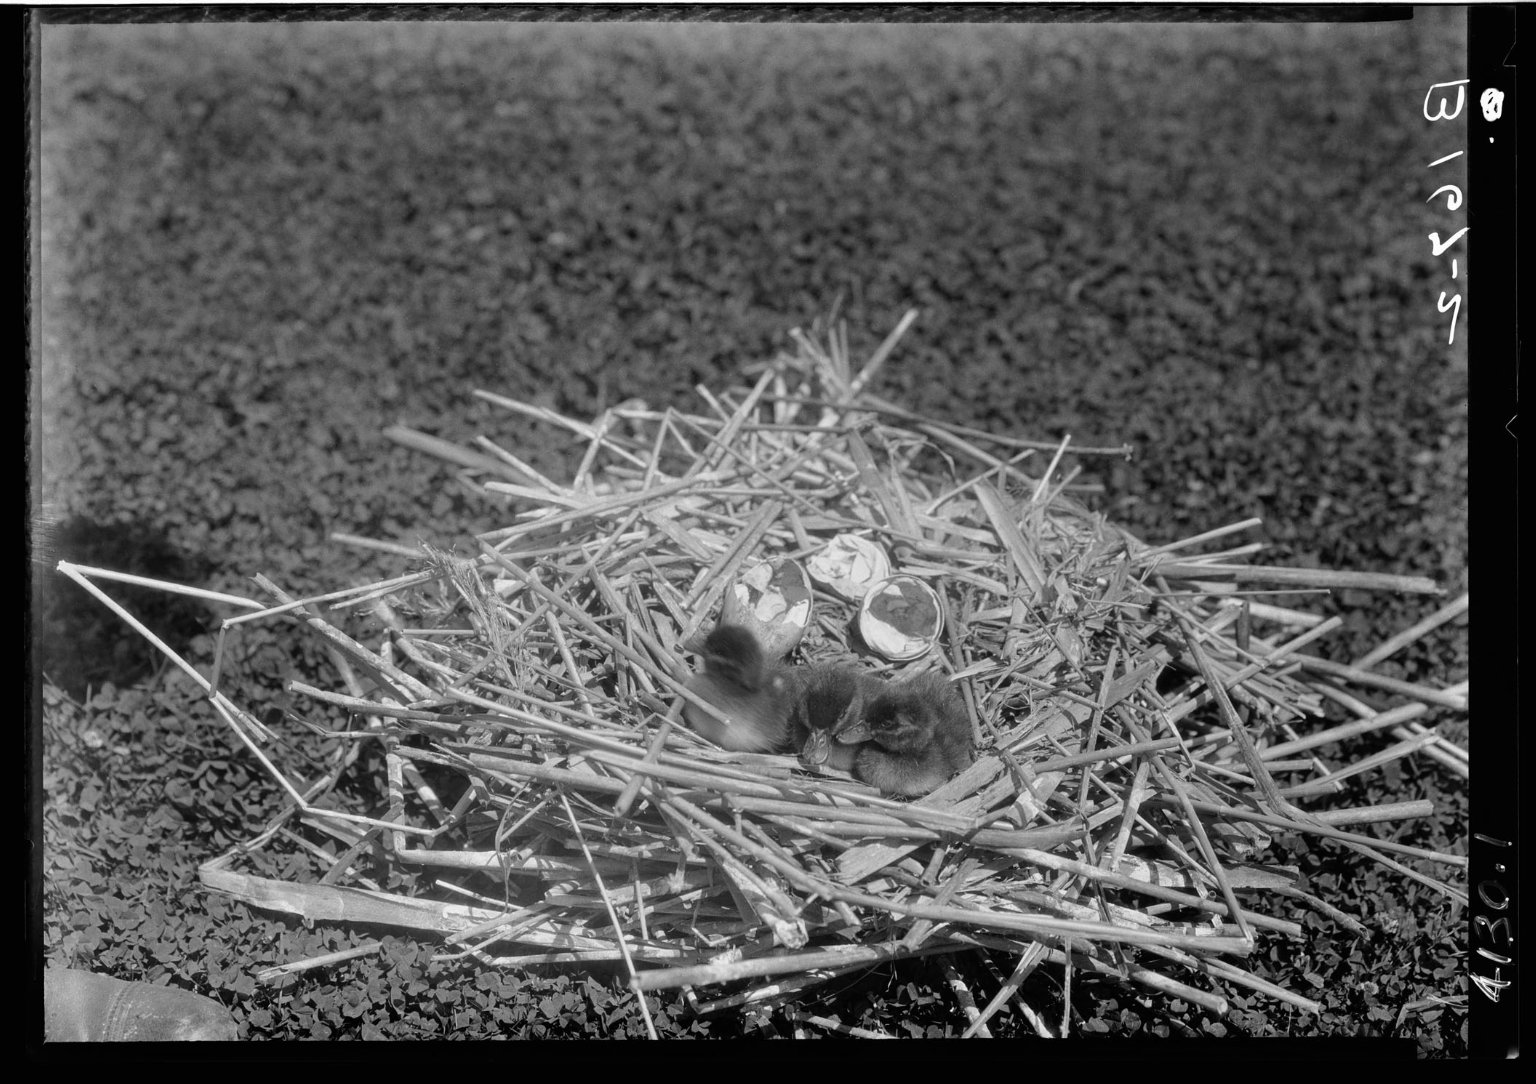 Ruddy duck nest, eggs & young